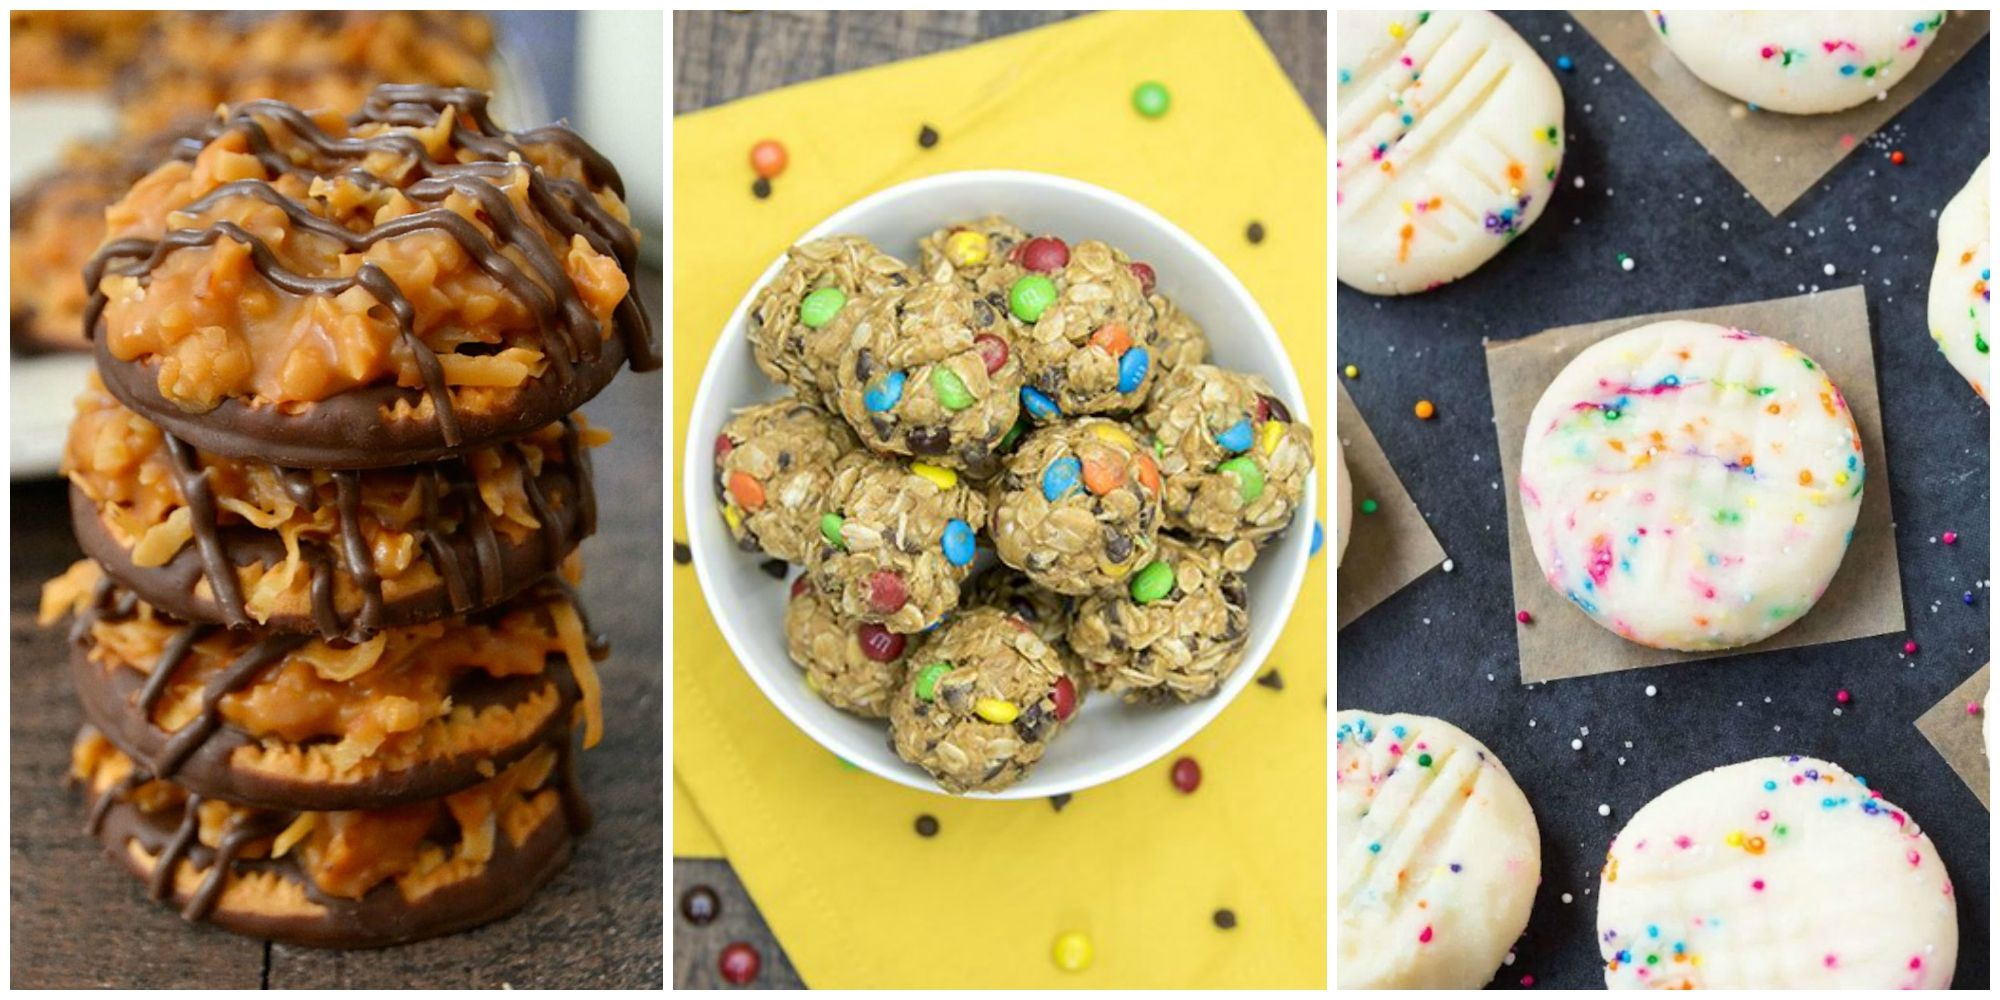 13 No Bake Cookies - How To Bake Cookies Without An Oven